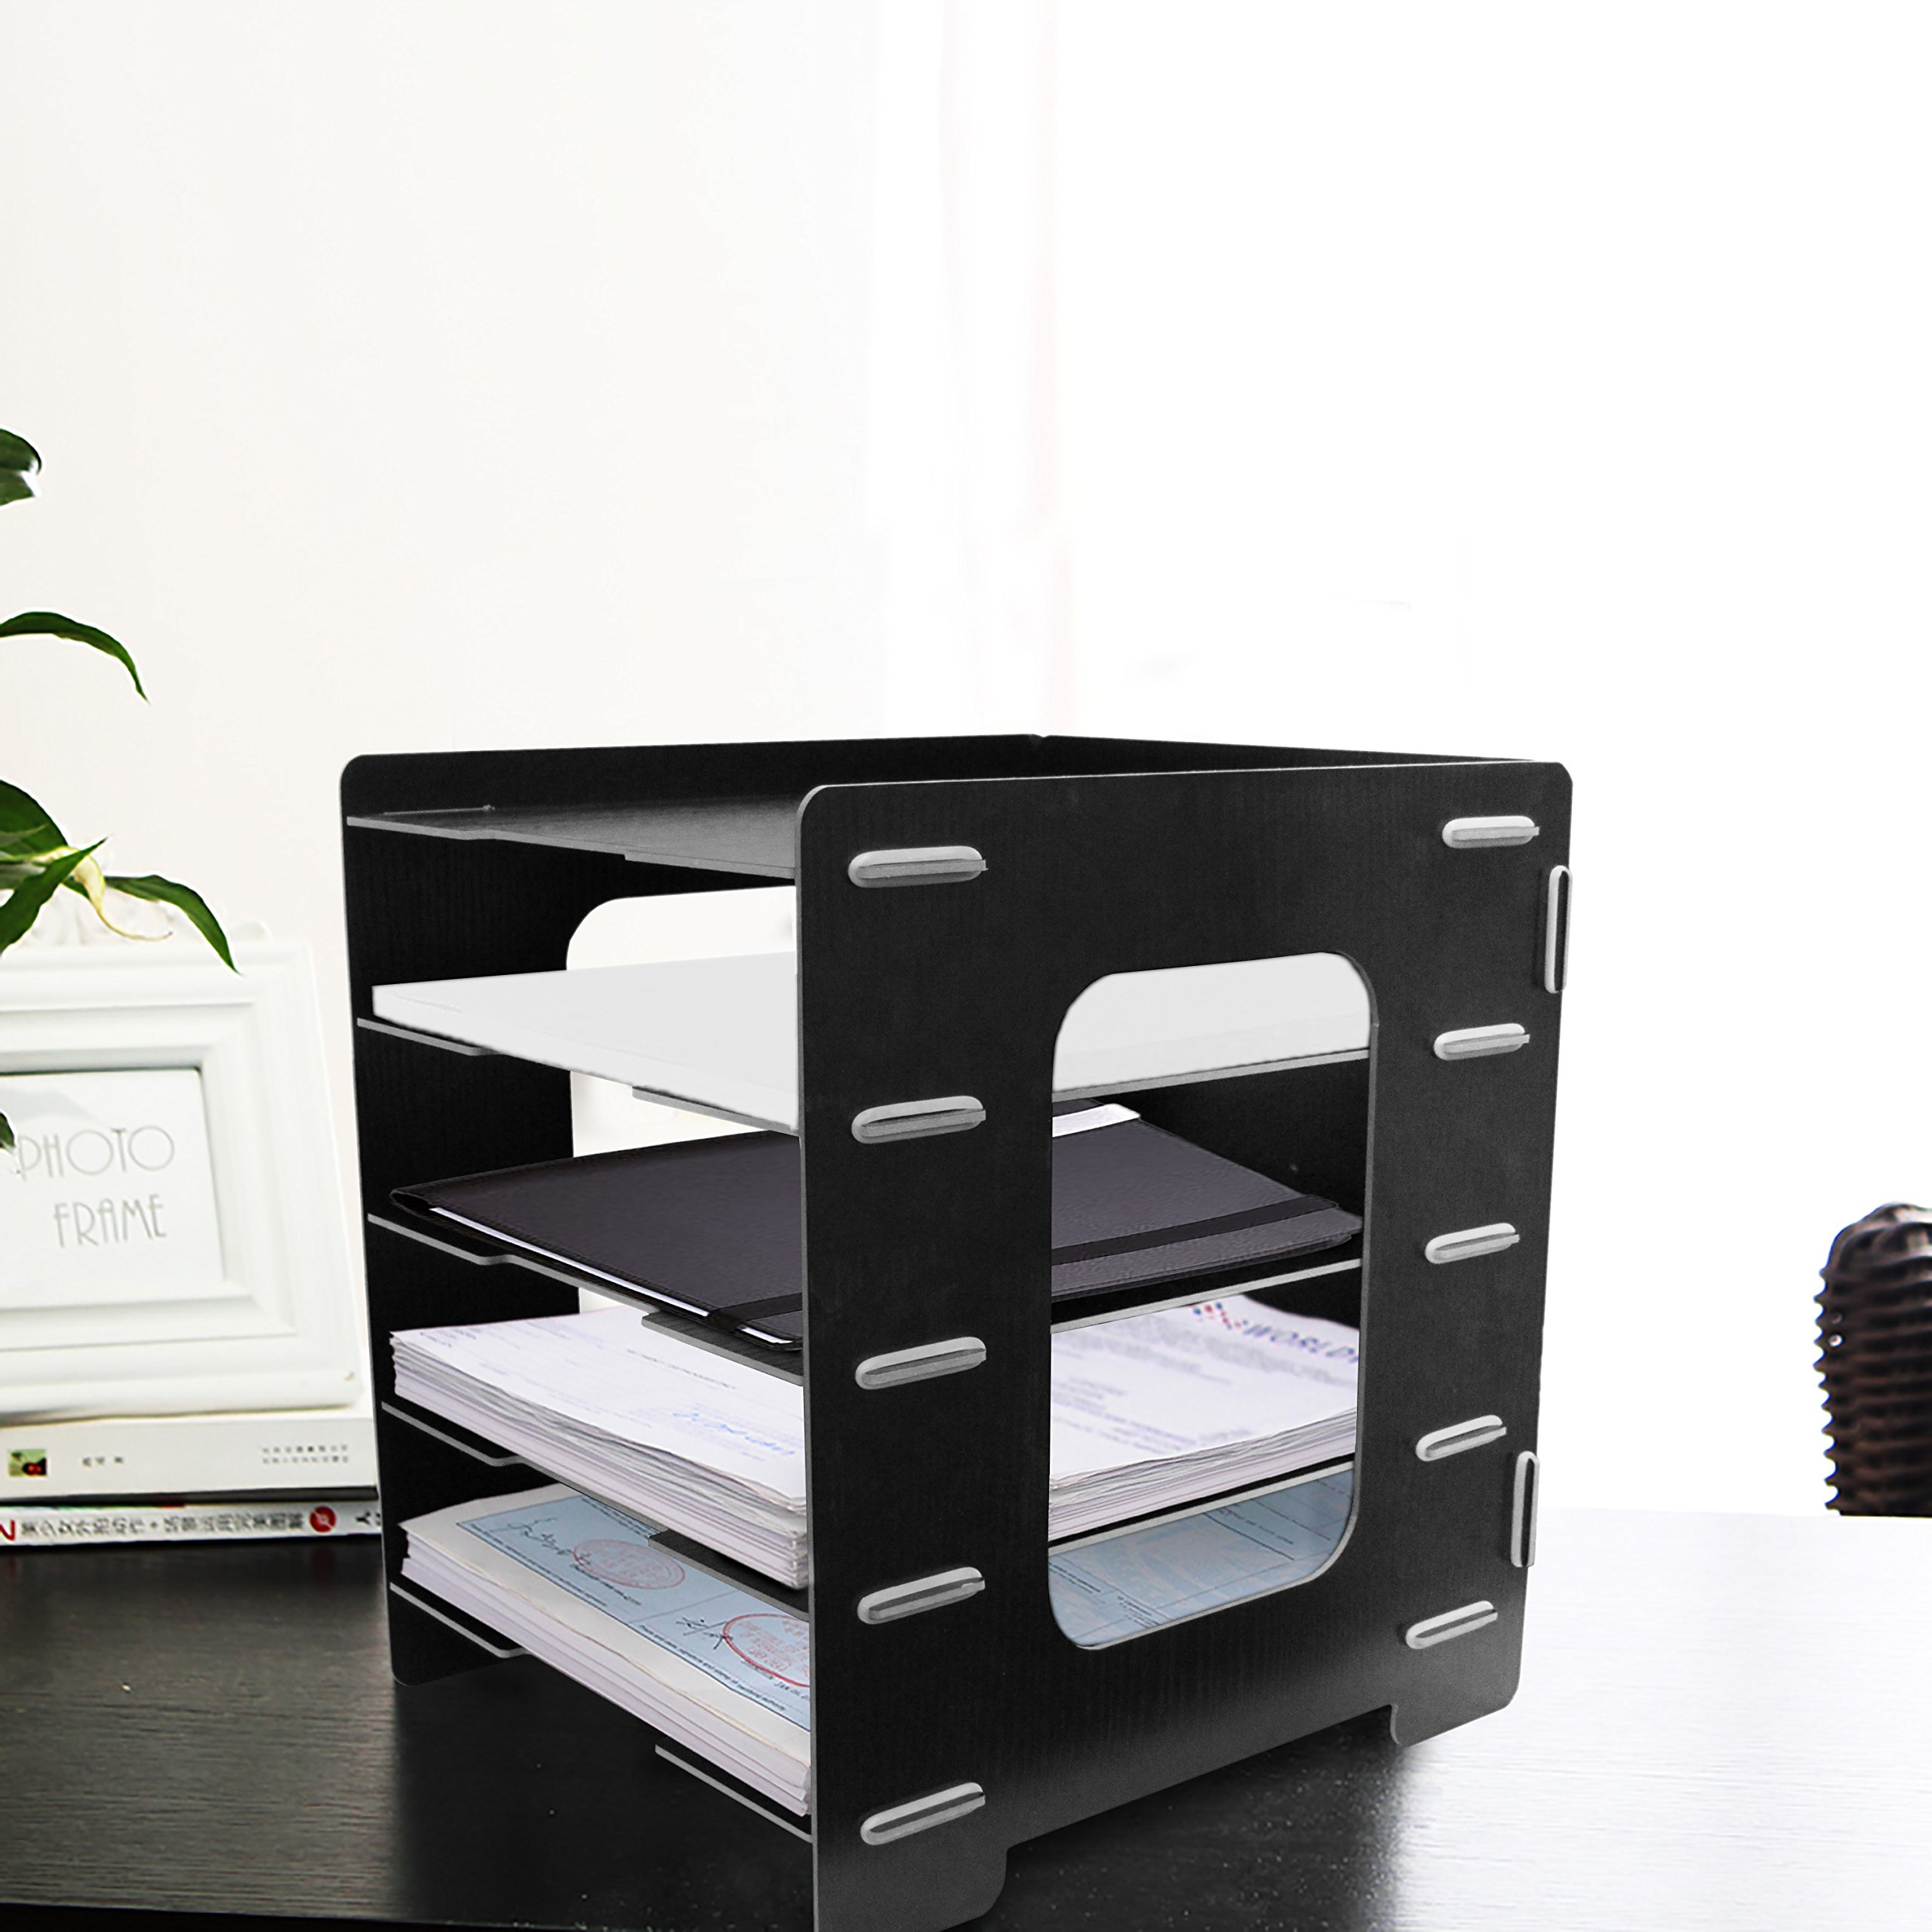 Black Paperstand Foldable Wooden 5 Tier, File Organizer. Heavy Duty, Sturdy Design! By Mega Stationers